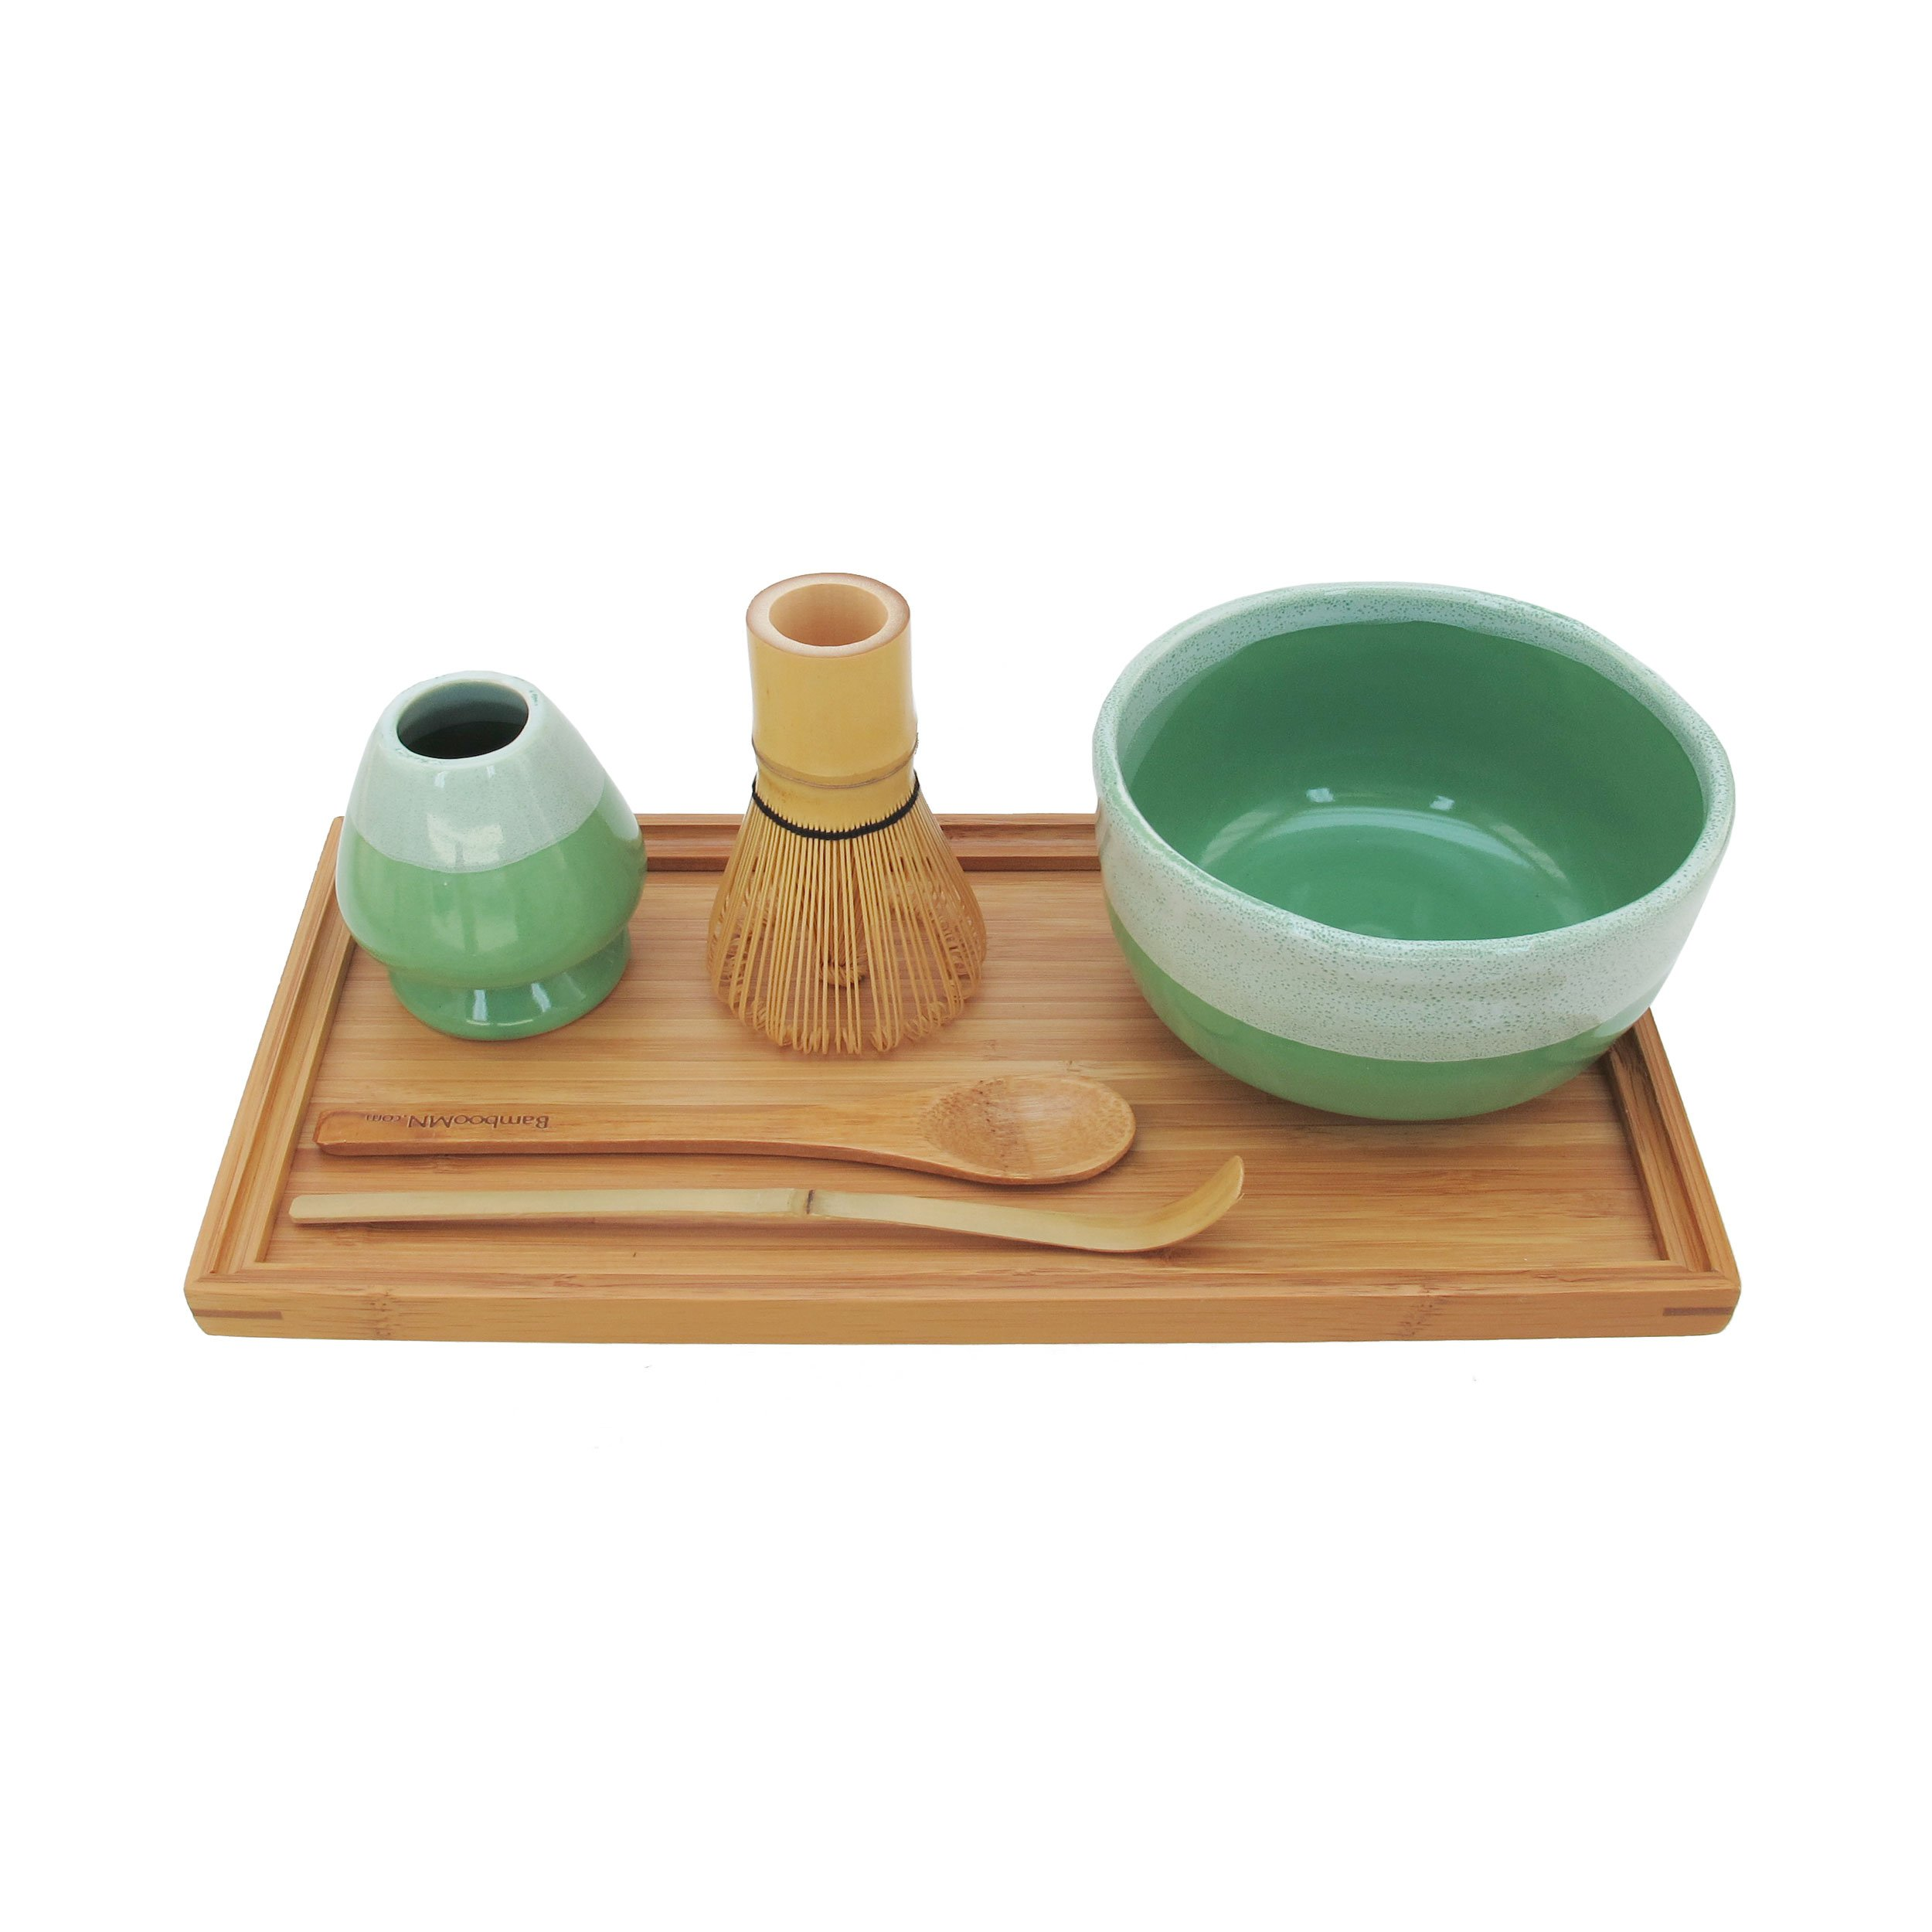 BambooMN Brand - Matcha Bowl Set (Includes Bowl, Rest,Tea Whisk, Chasaku, Tea Spoon & Tray) 10 Sets Mint Green by BambooMN (Image #2)